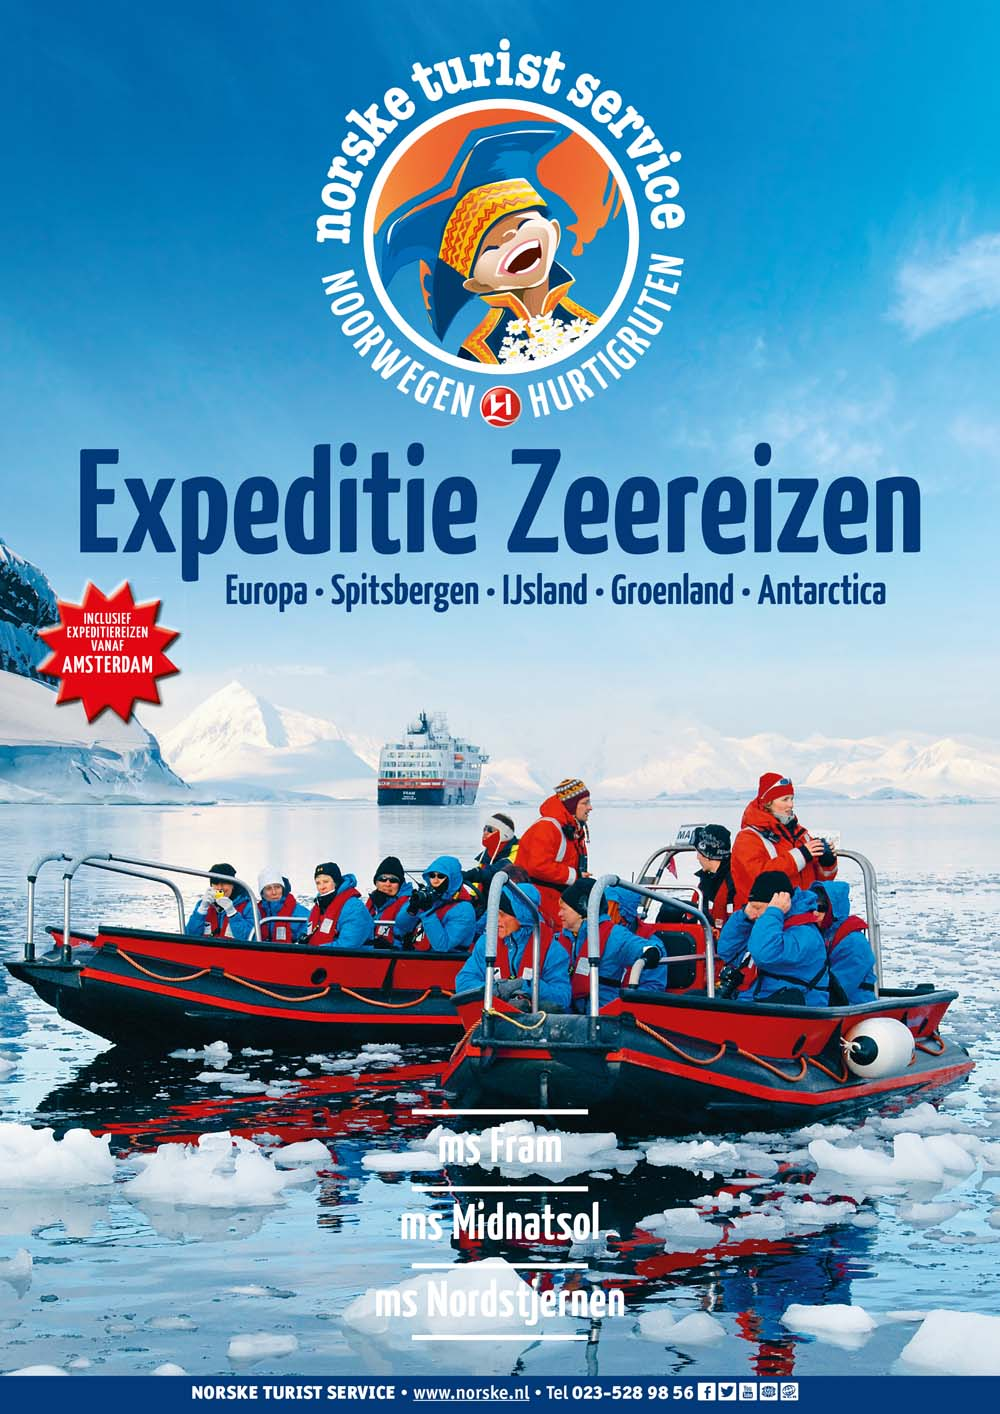 Hurtigruten Expeditie-Zeereizen 2016-2017